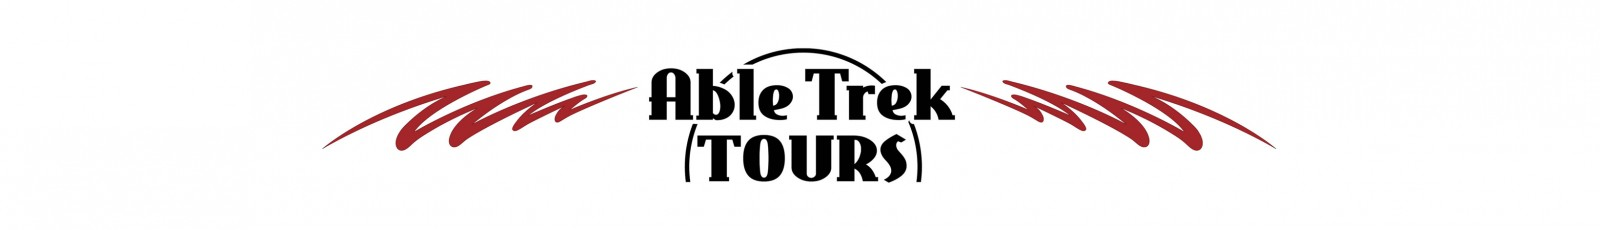 Able Trek Tours